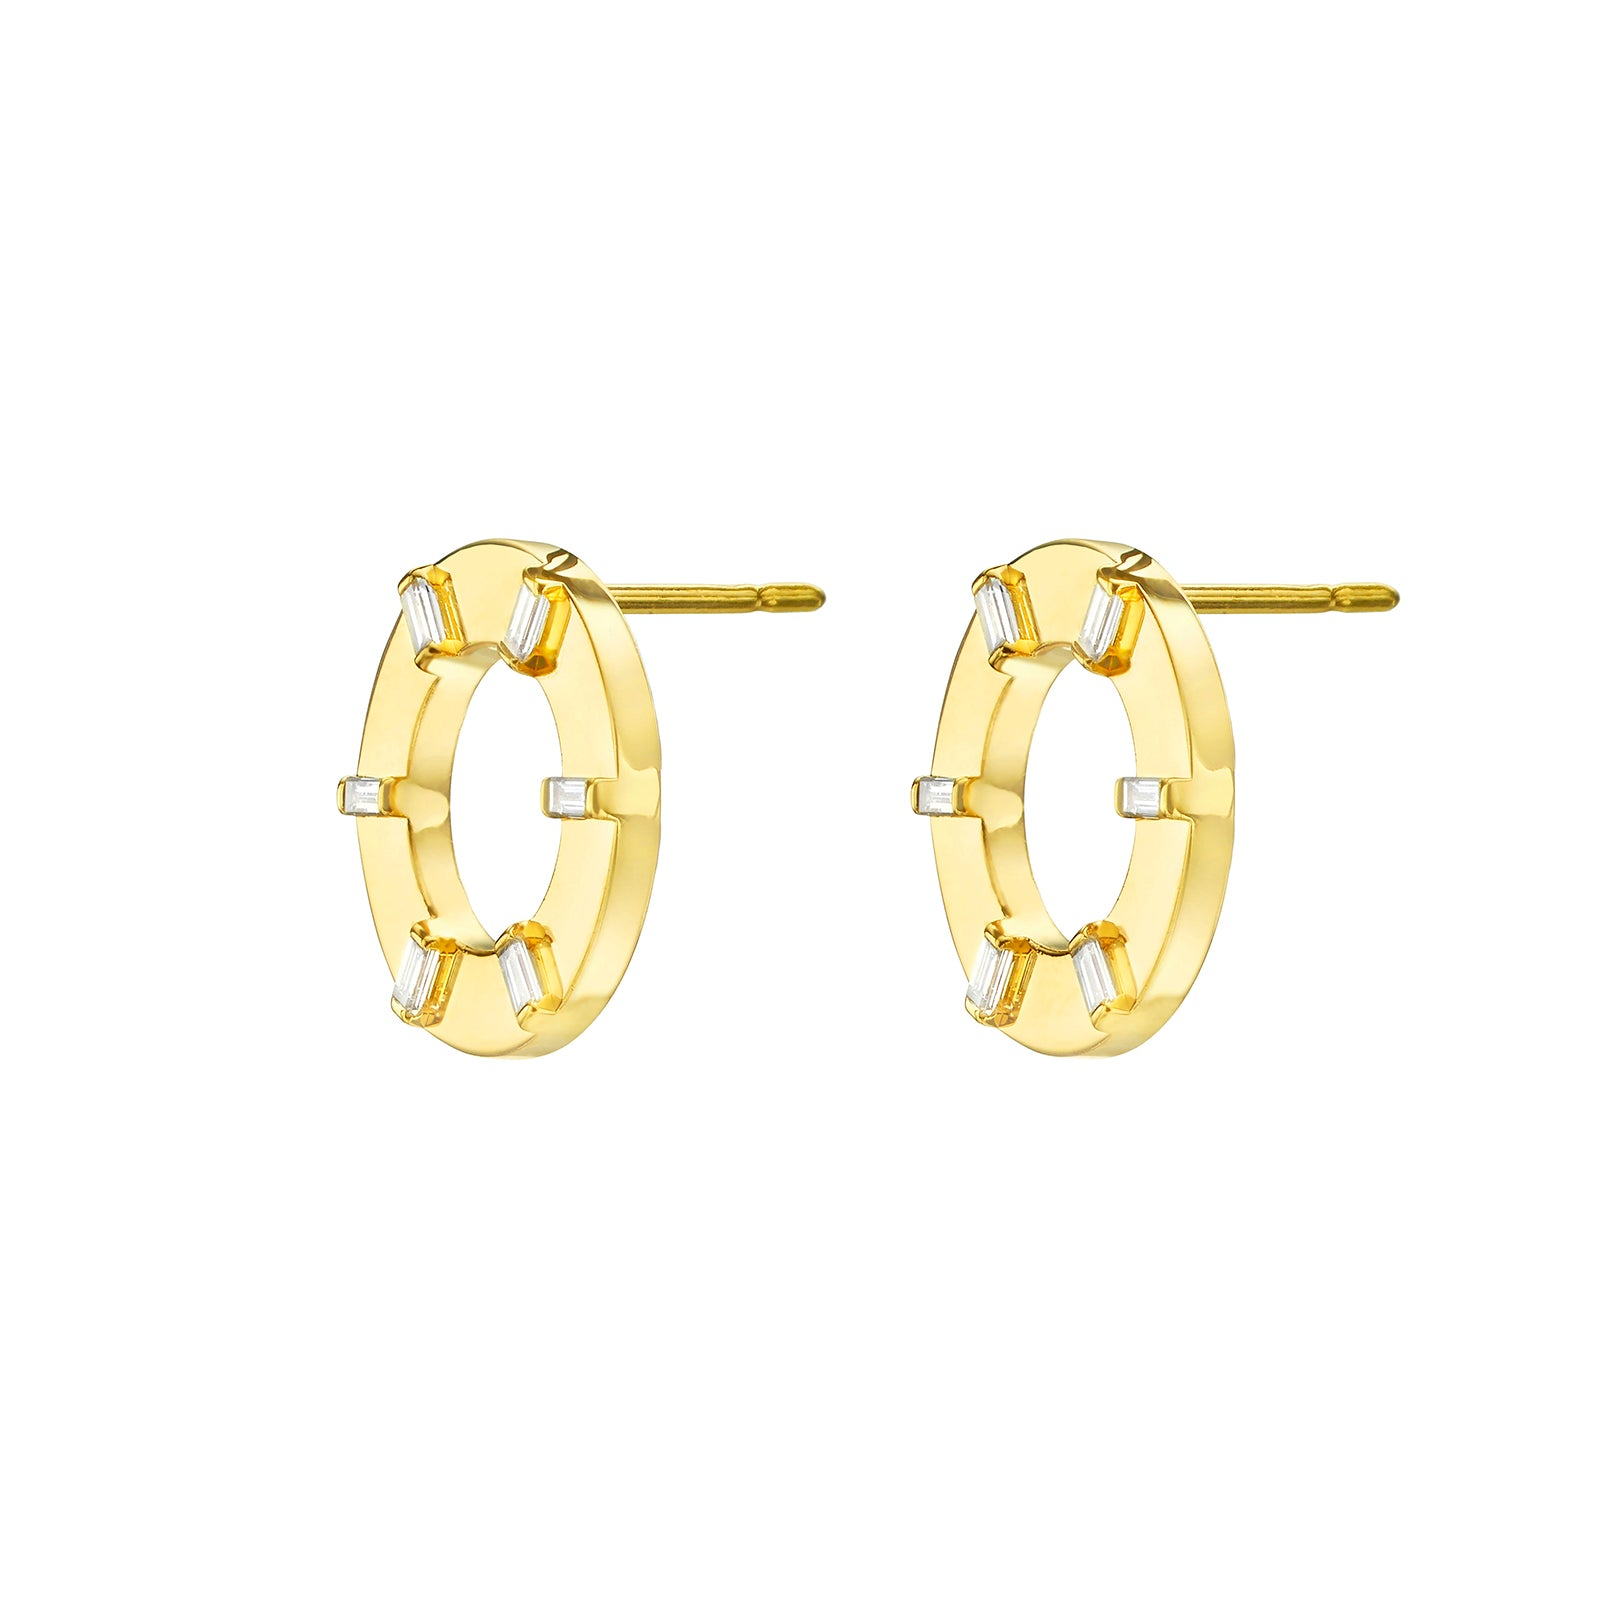 Cadar Prime Unity Stud Earrings - Earrings - Broken English Jewelry